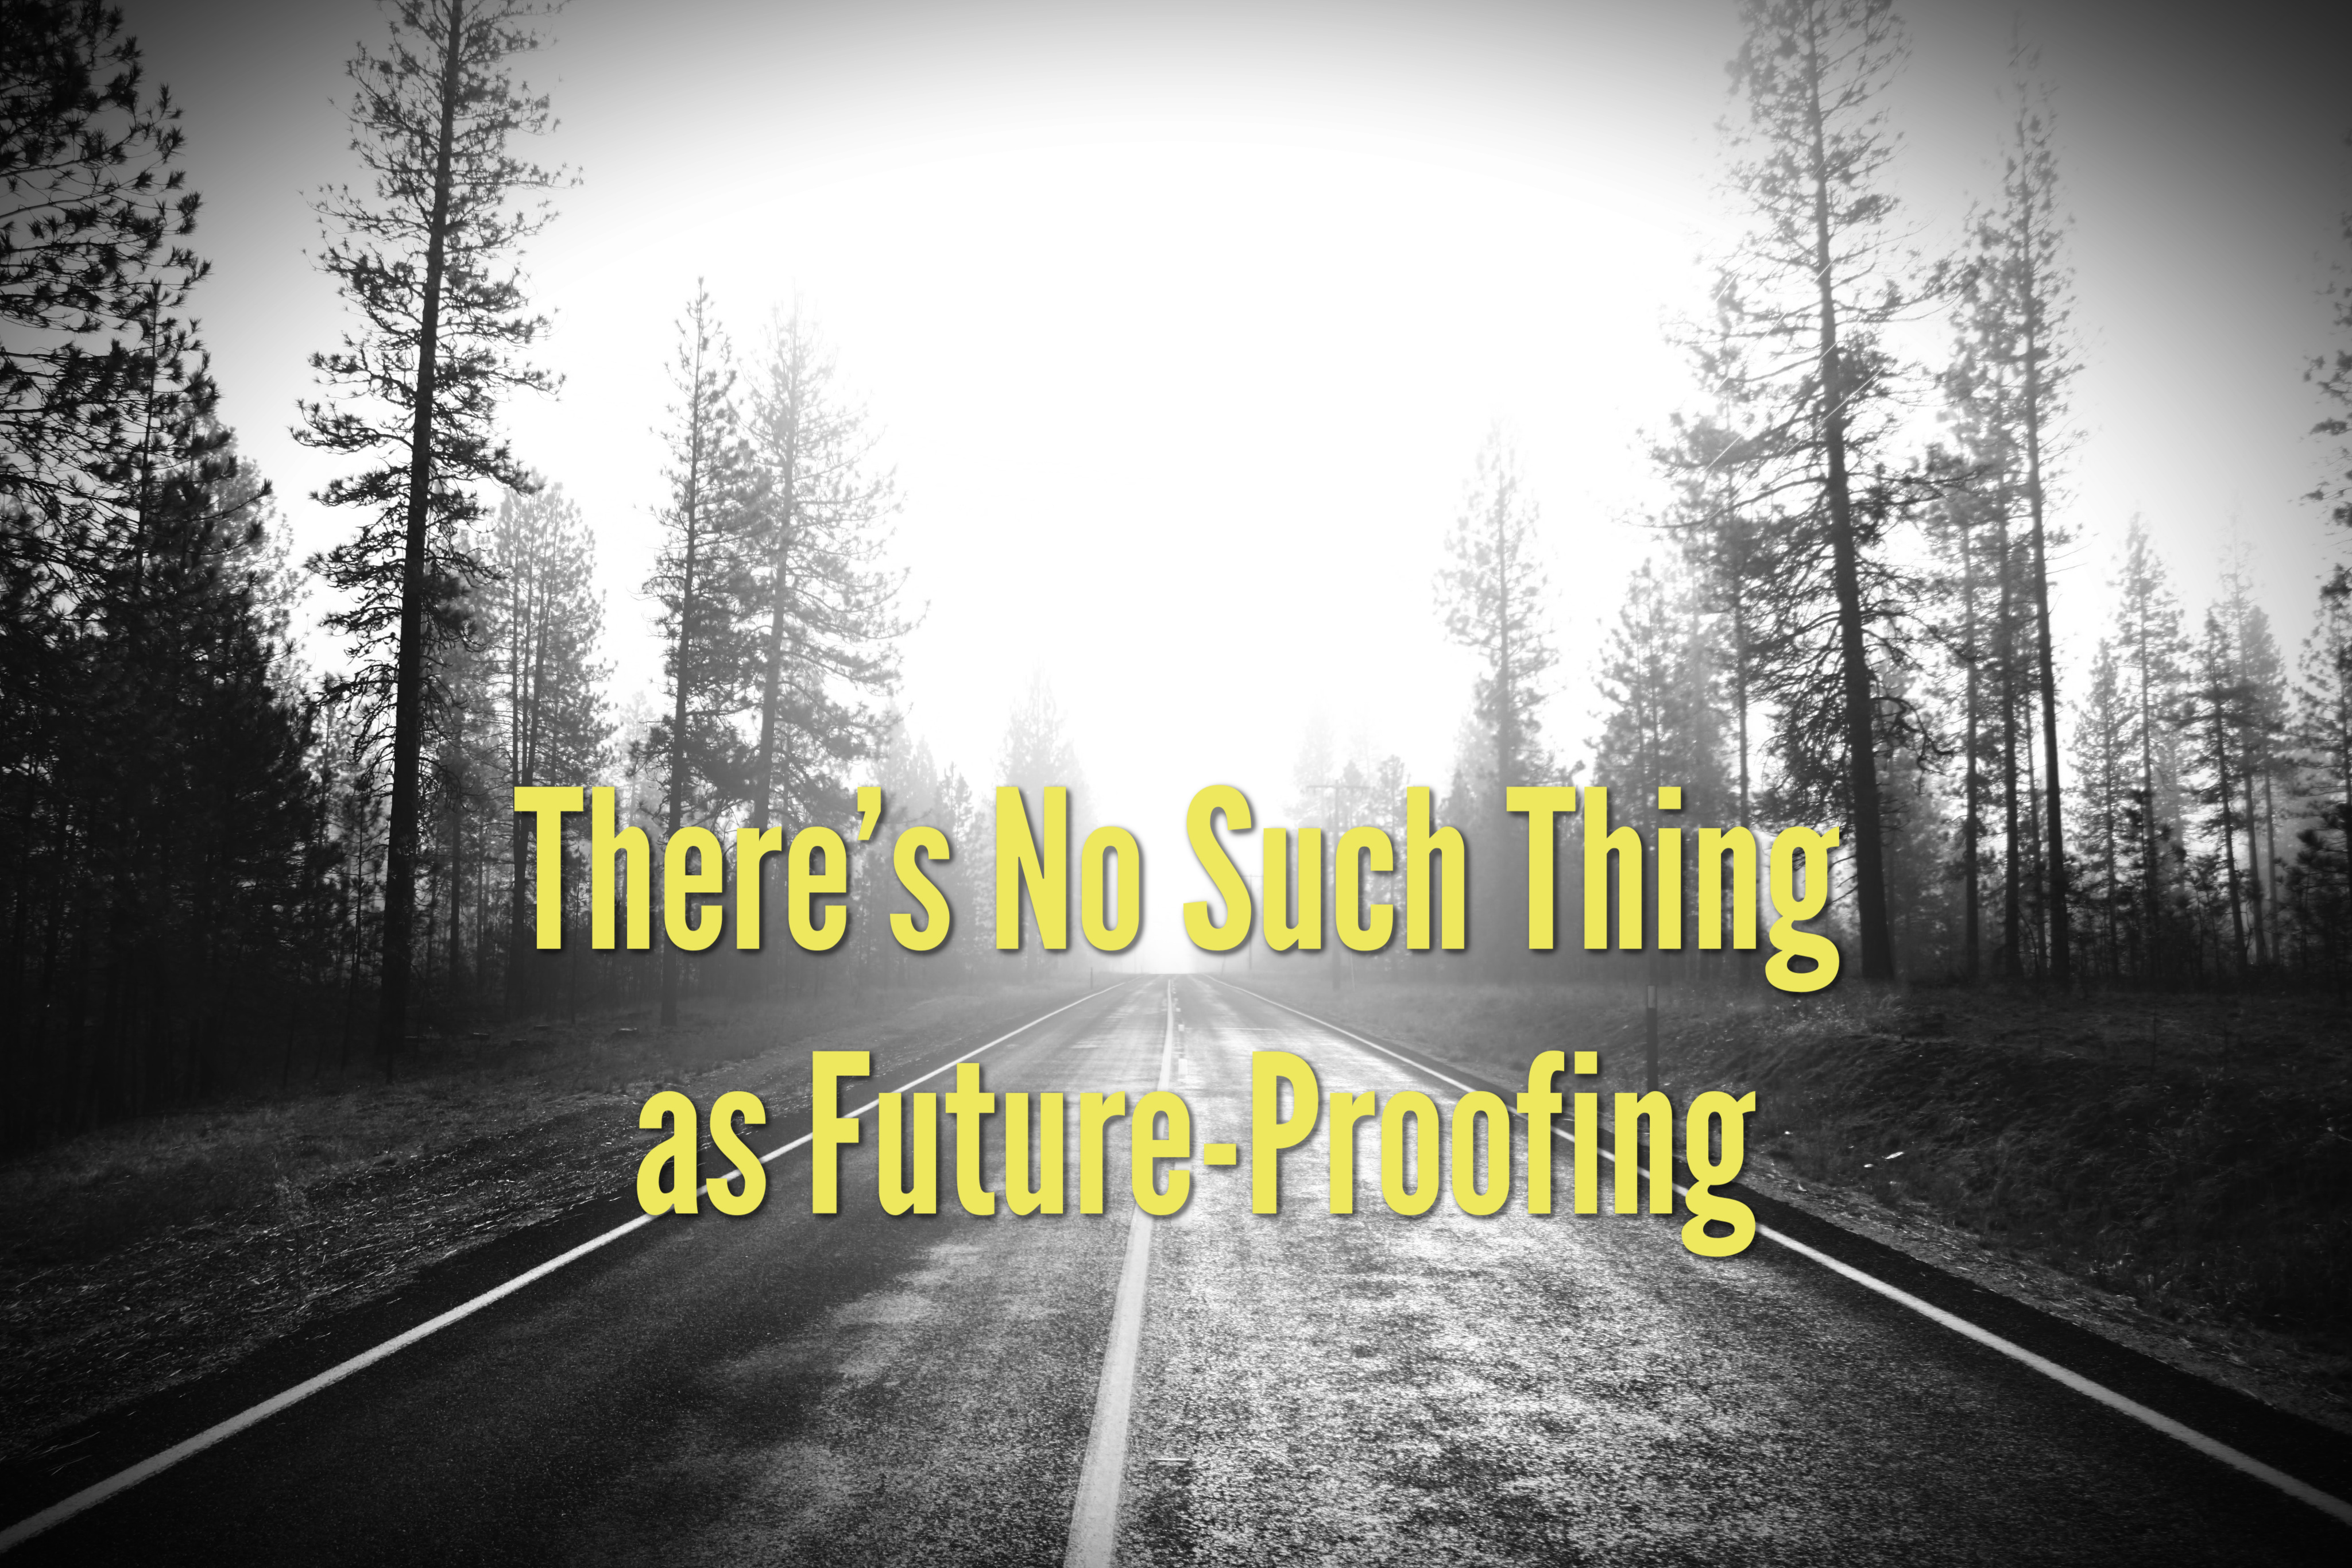 There's No Such Thing as Future-Proofing